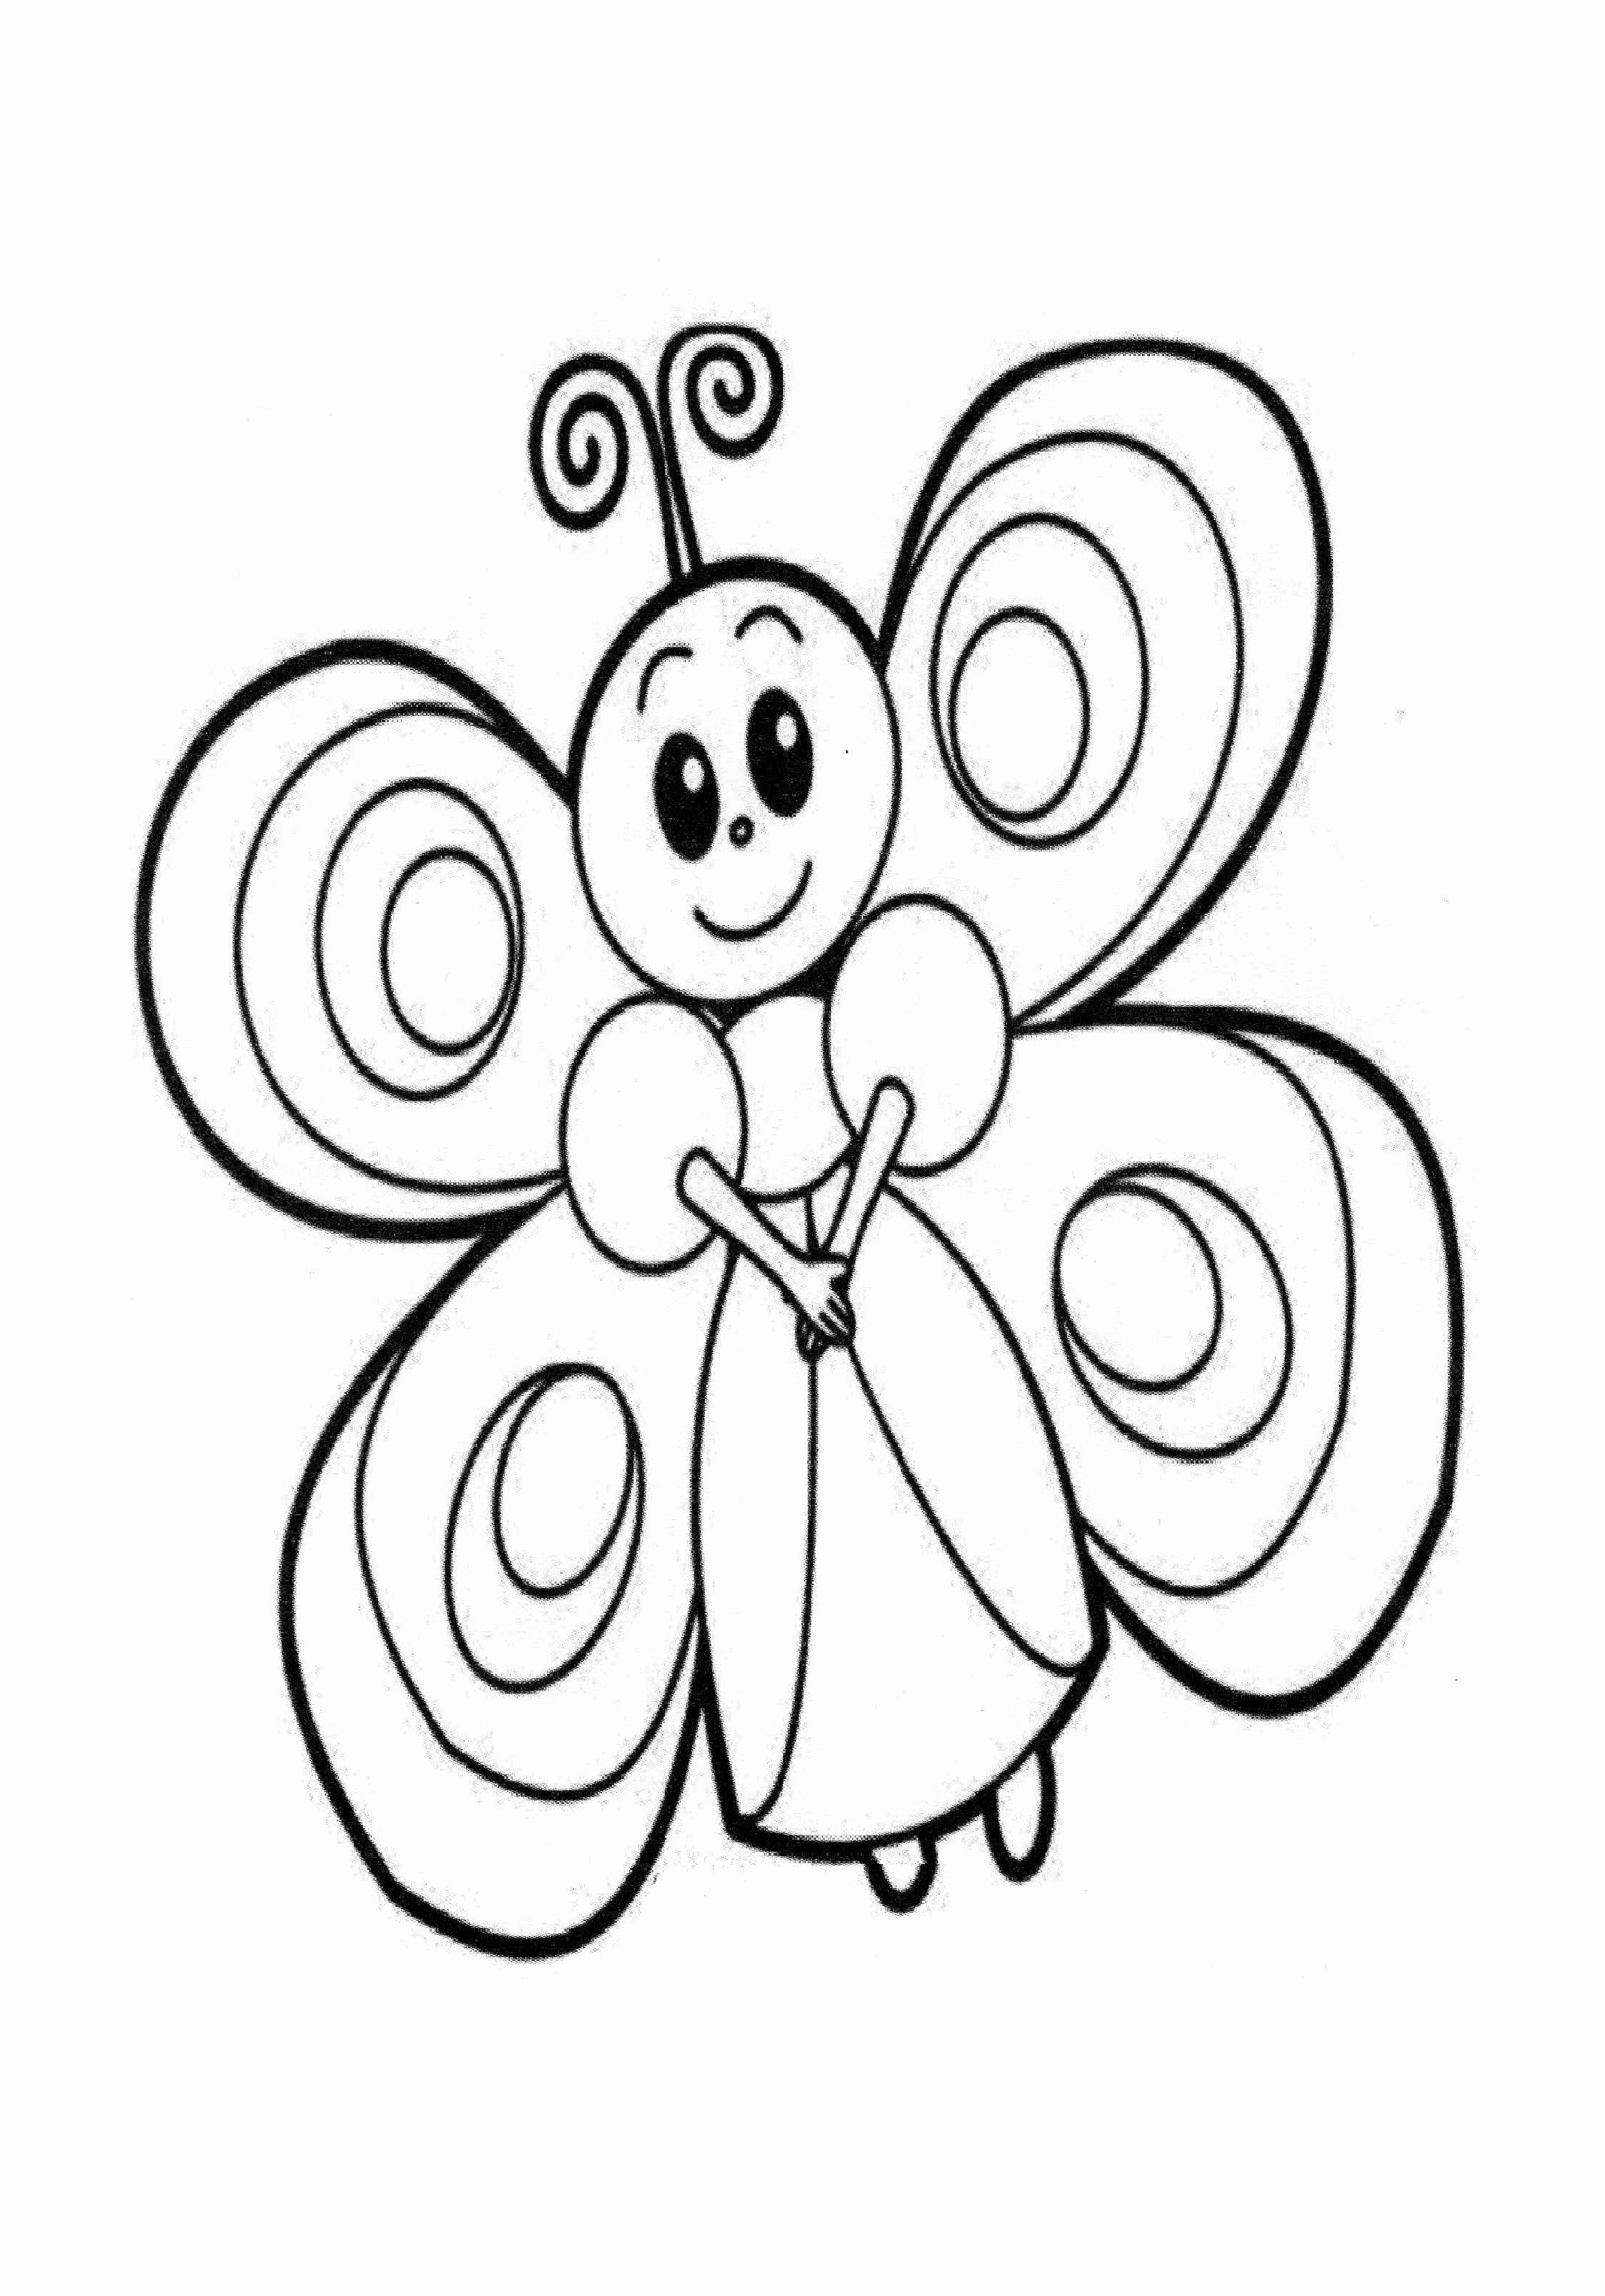 coloring pages for kids butterfly free printable butterfly coloring pages for kids for coloring pages butterfly kids